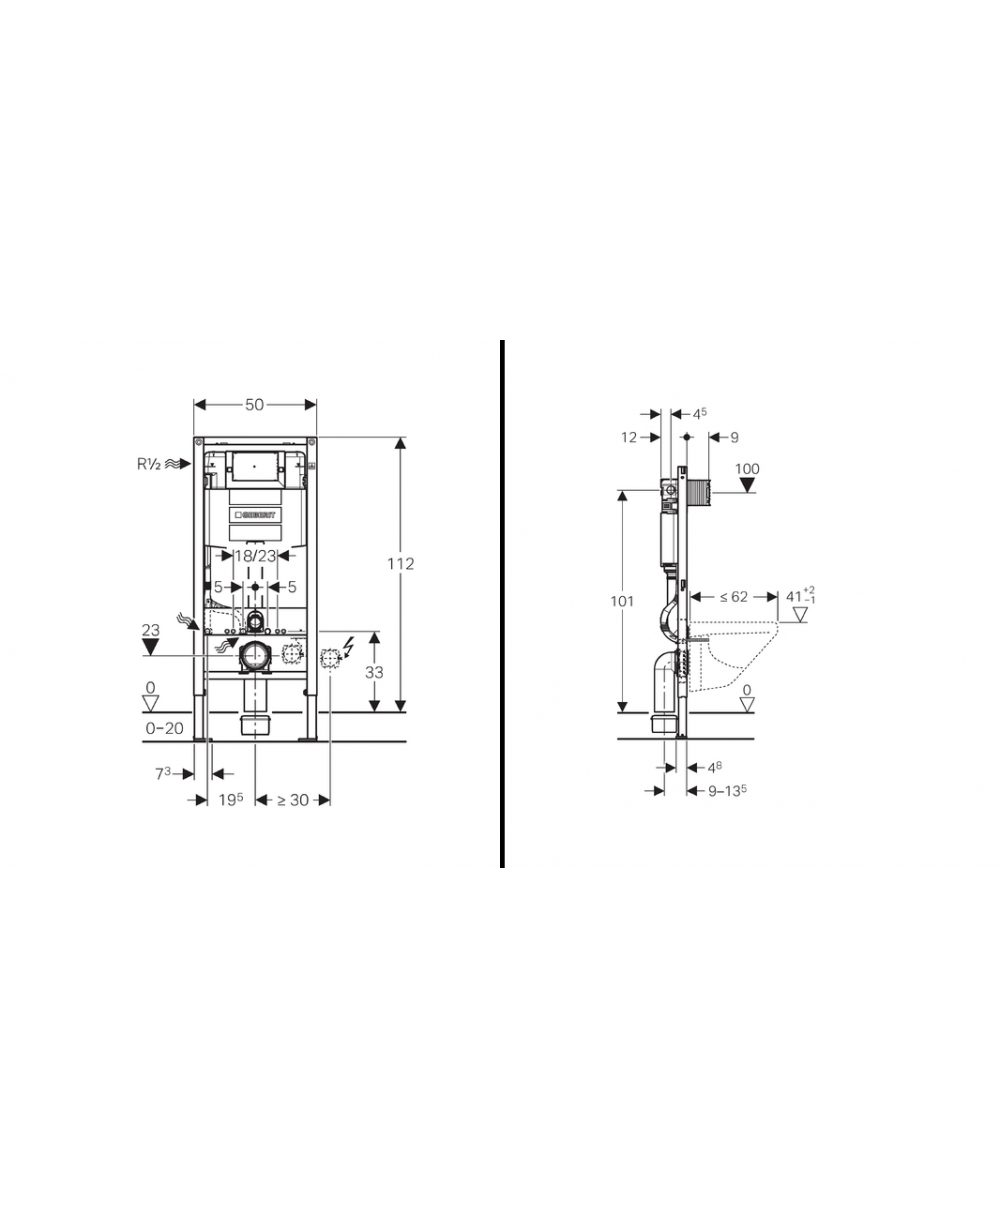 Geberit duofix frame for wall hung wc h82 with omega cistern 12cm - Geberit Duofix Frame For Wall Hung Wc H82 With Omega Cistern 12cm 5